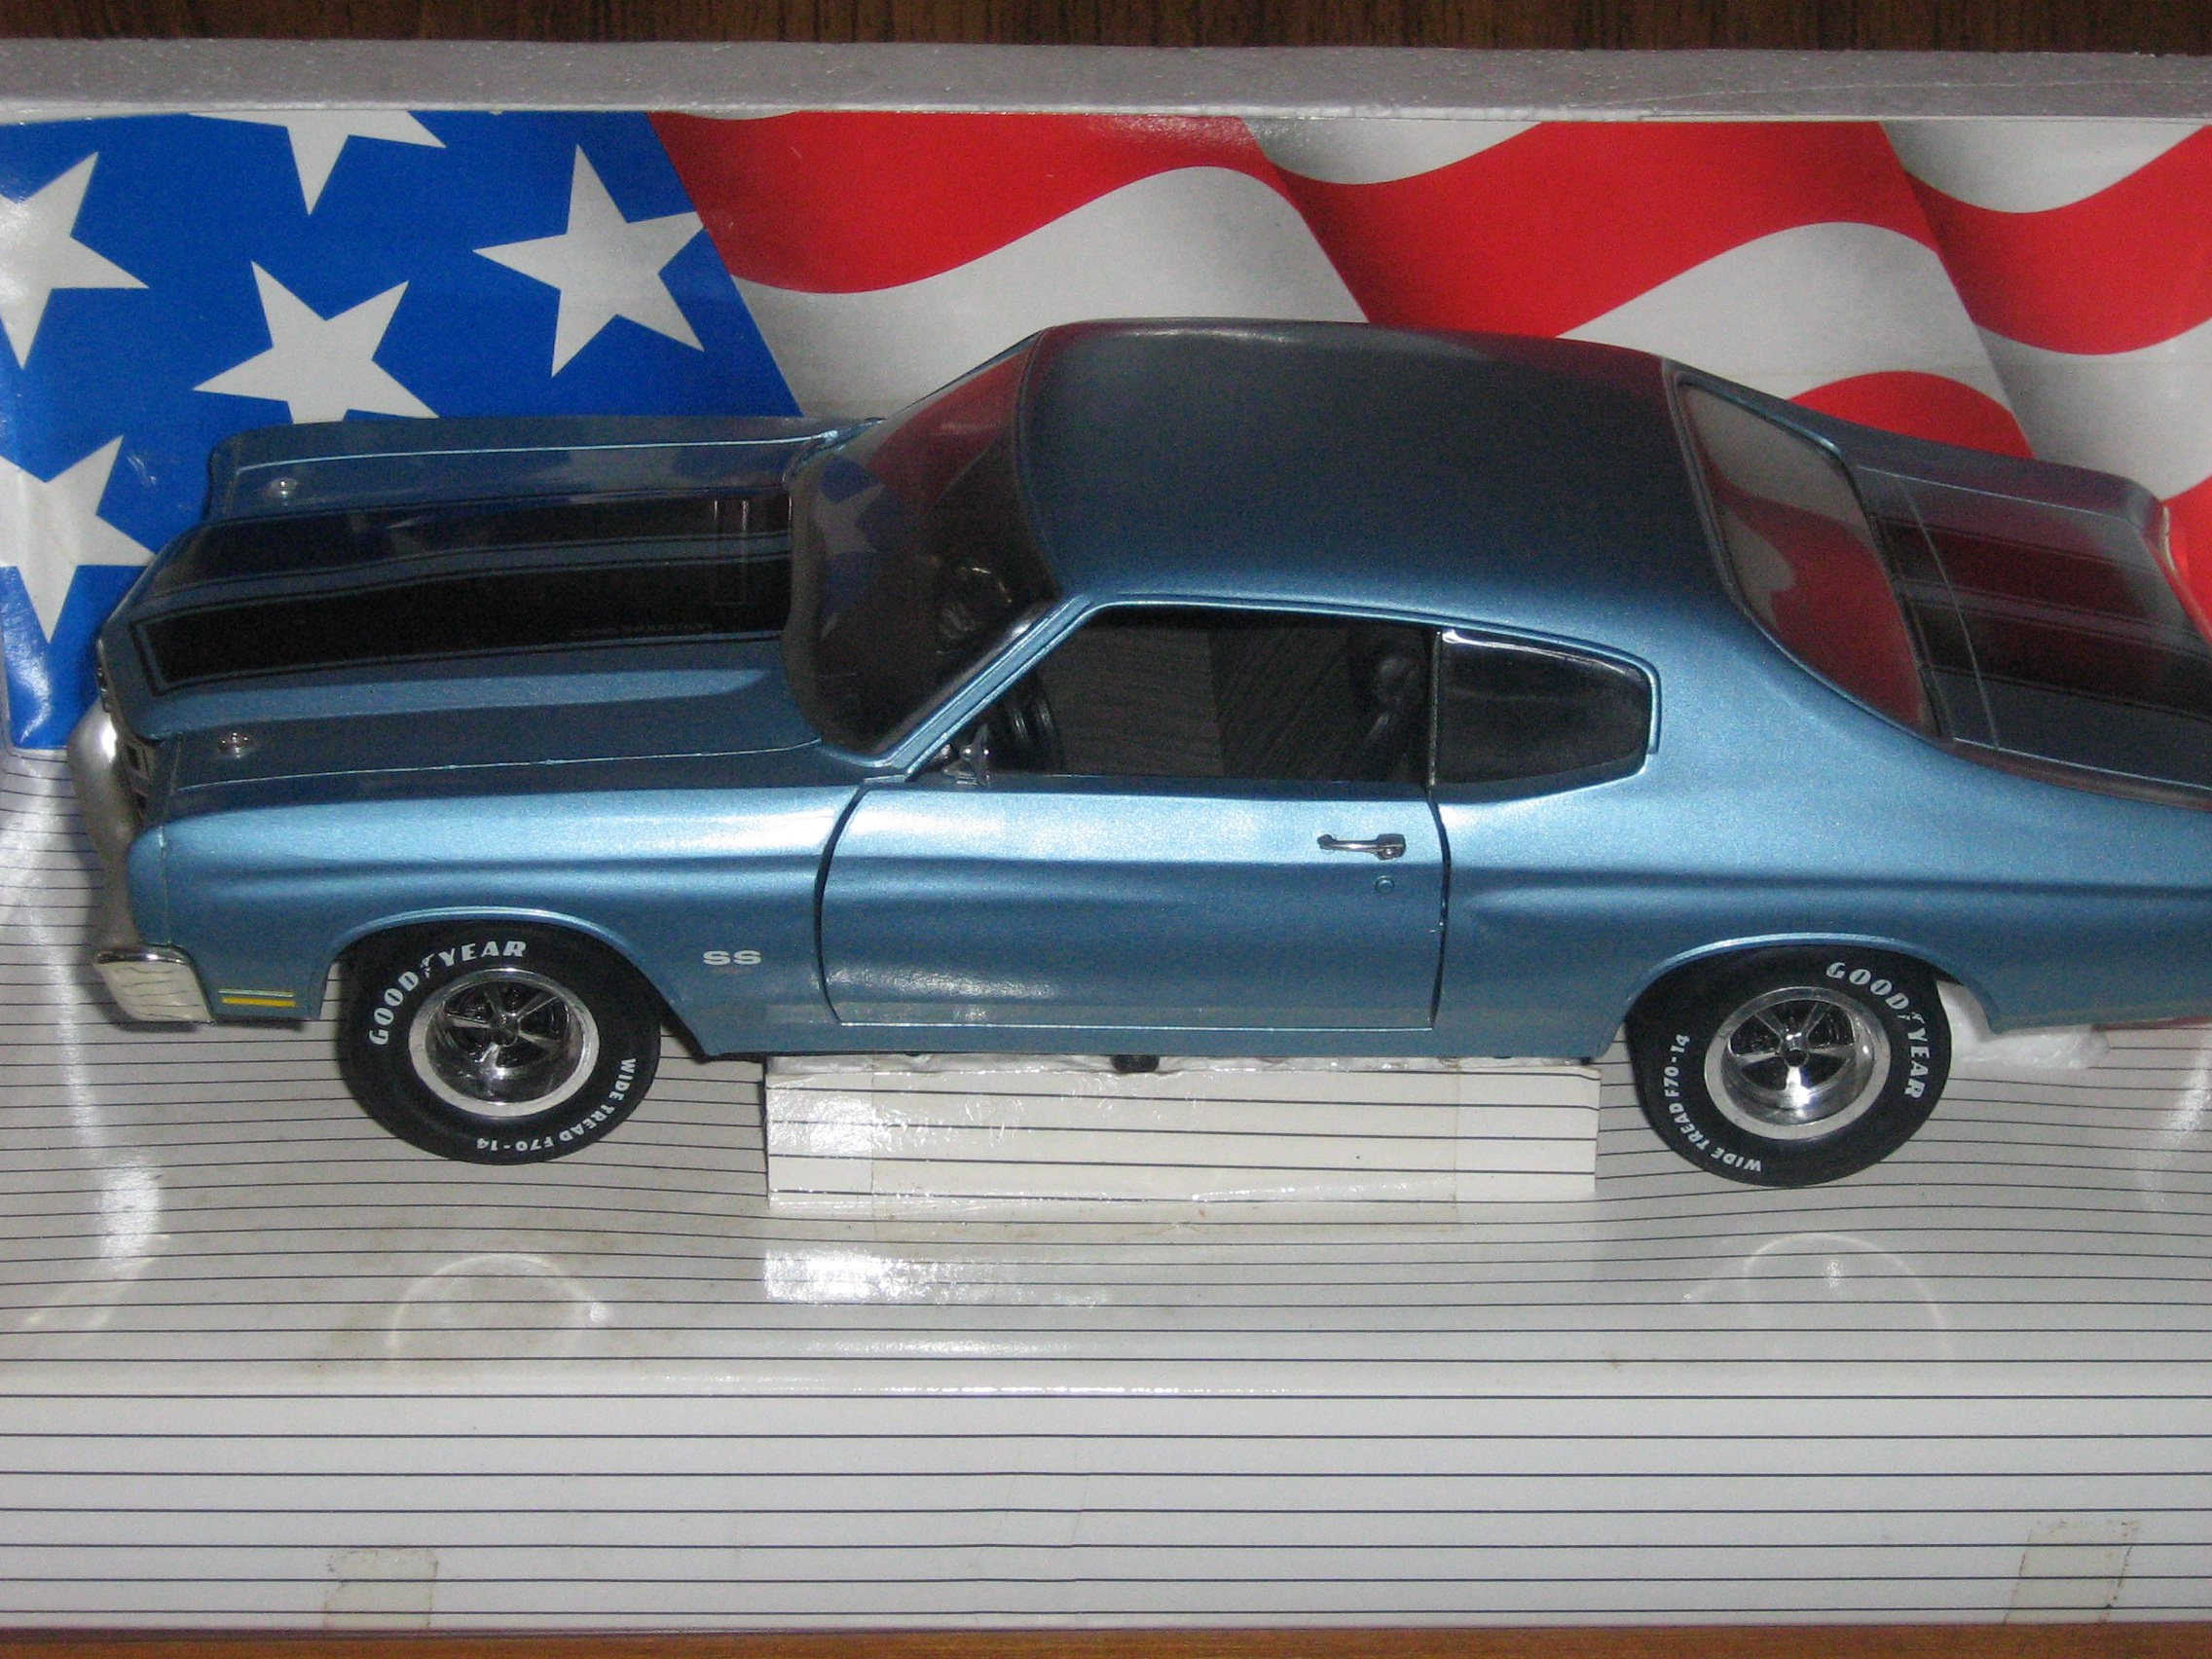 FOR SALE: 70 CHEVELLE SS 454 LS6